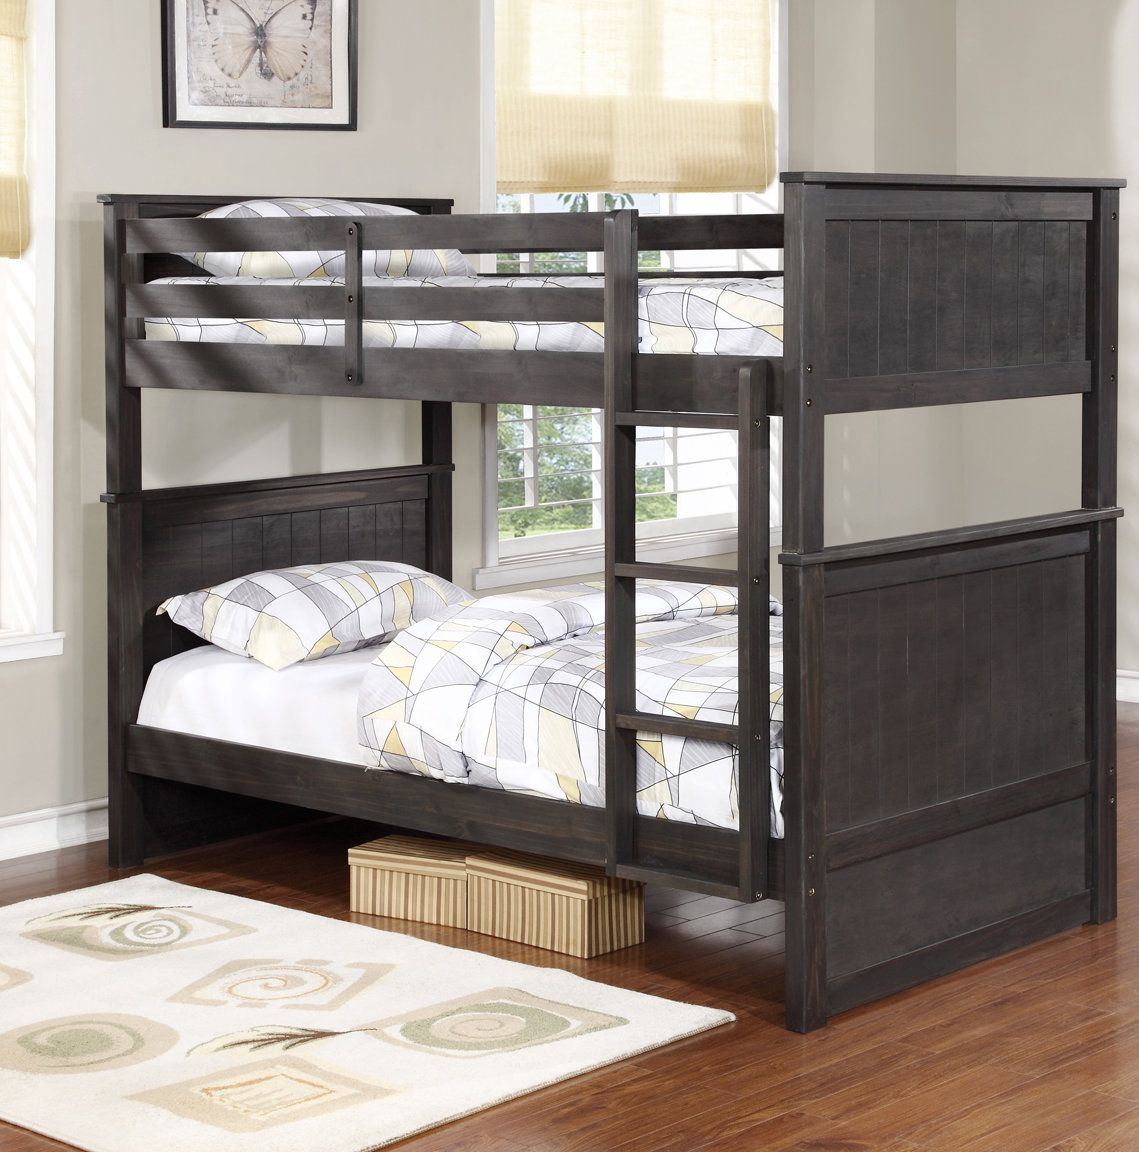 Bedroom ideas with loft bed  Leann Twin Bunk Bed  Products  Pinterest  Products